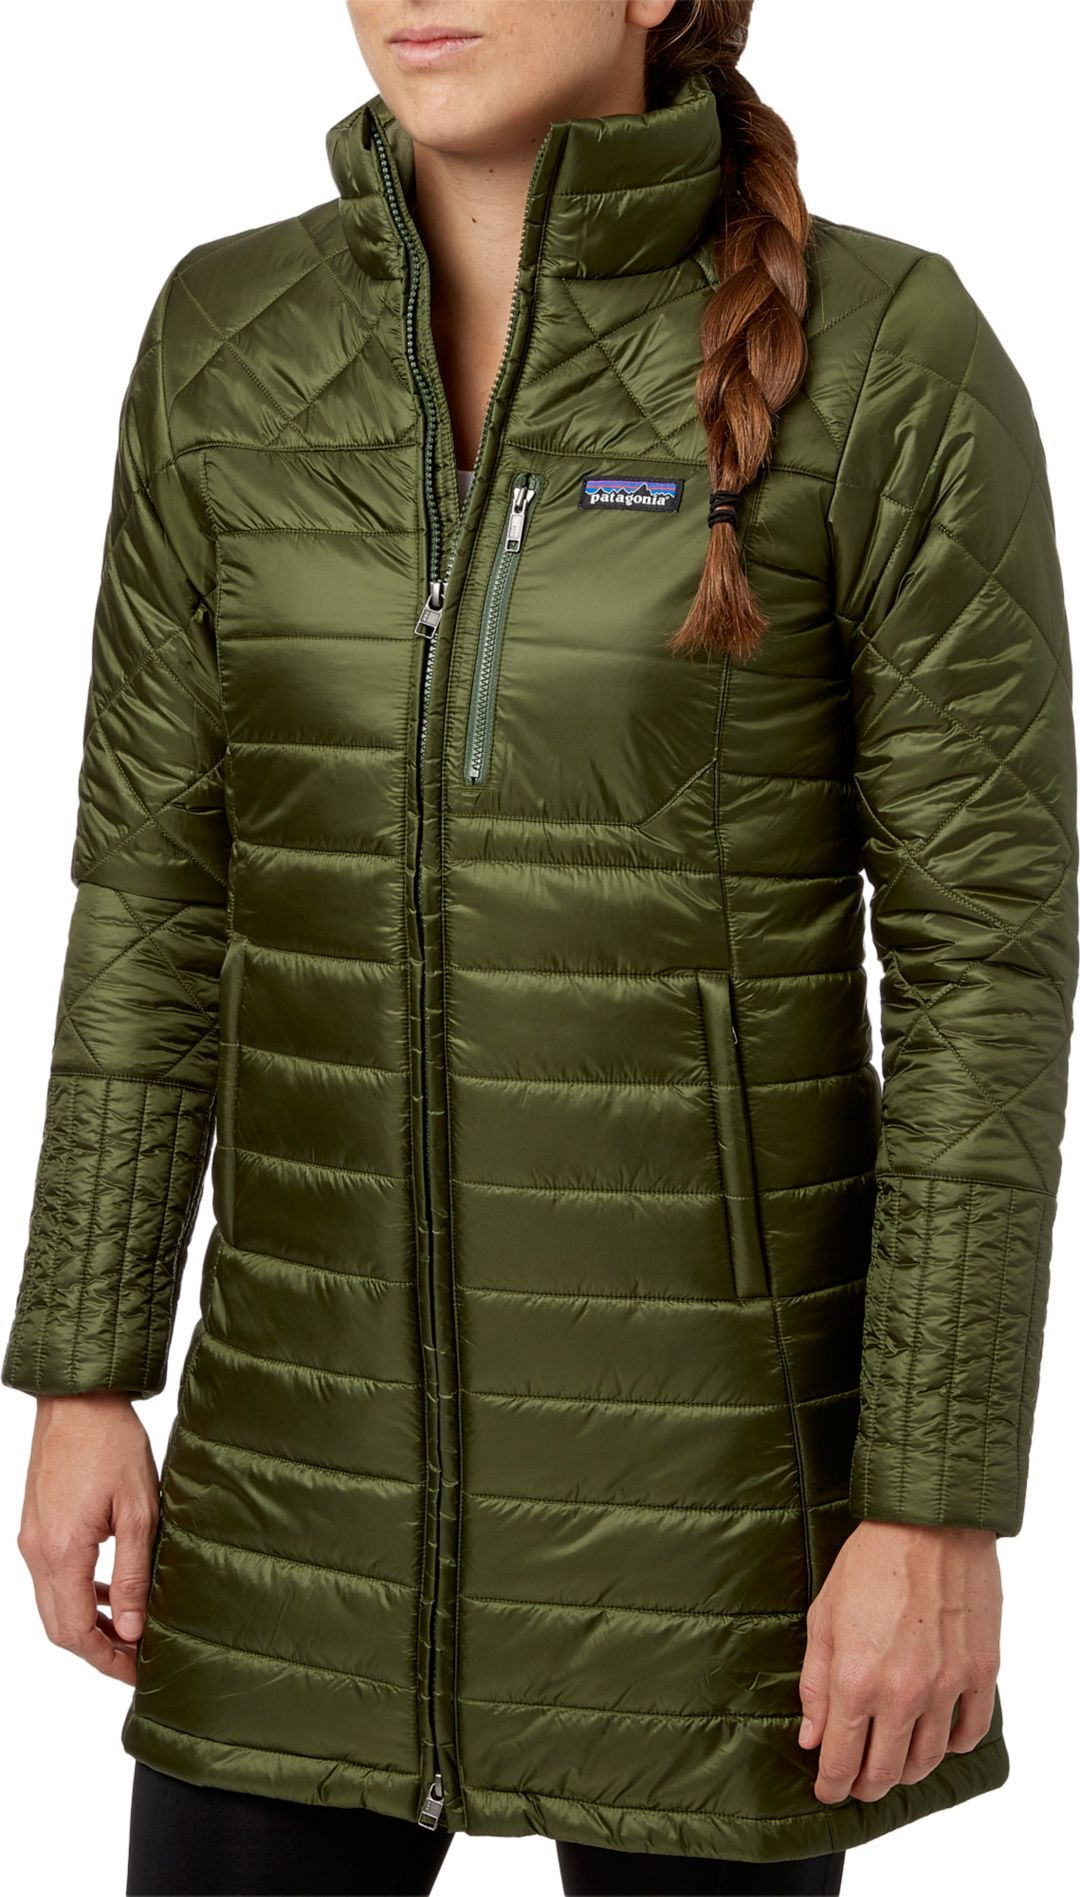 87ad5488957 Patagonia Women's Radalie Insulated Parka